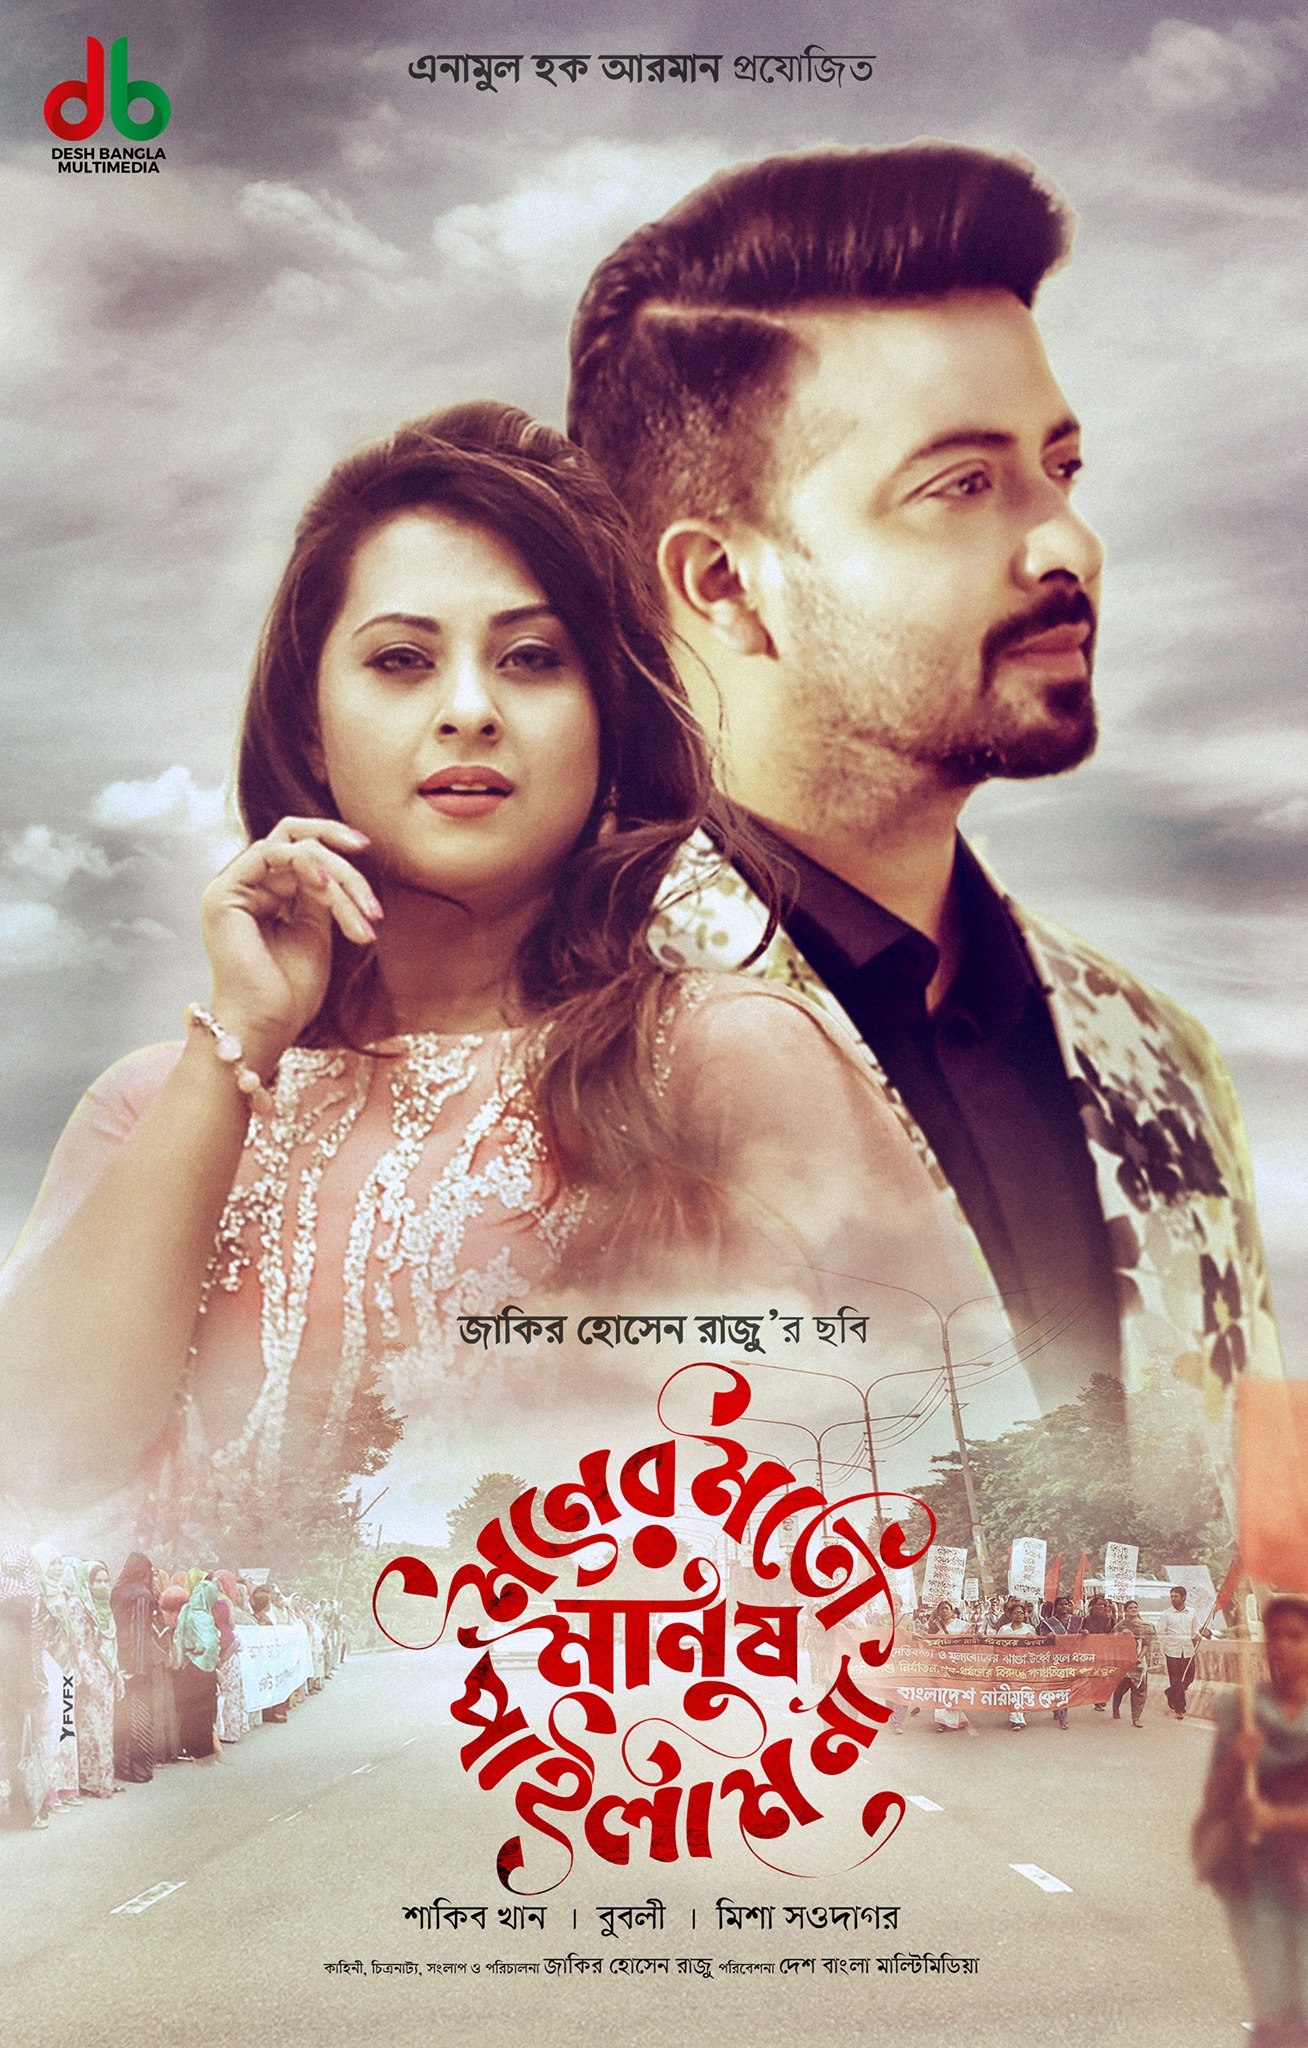 Moner Moto Manush Pailam Naa 2020 Bangla Movie 720p HDRip 850MB MKV